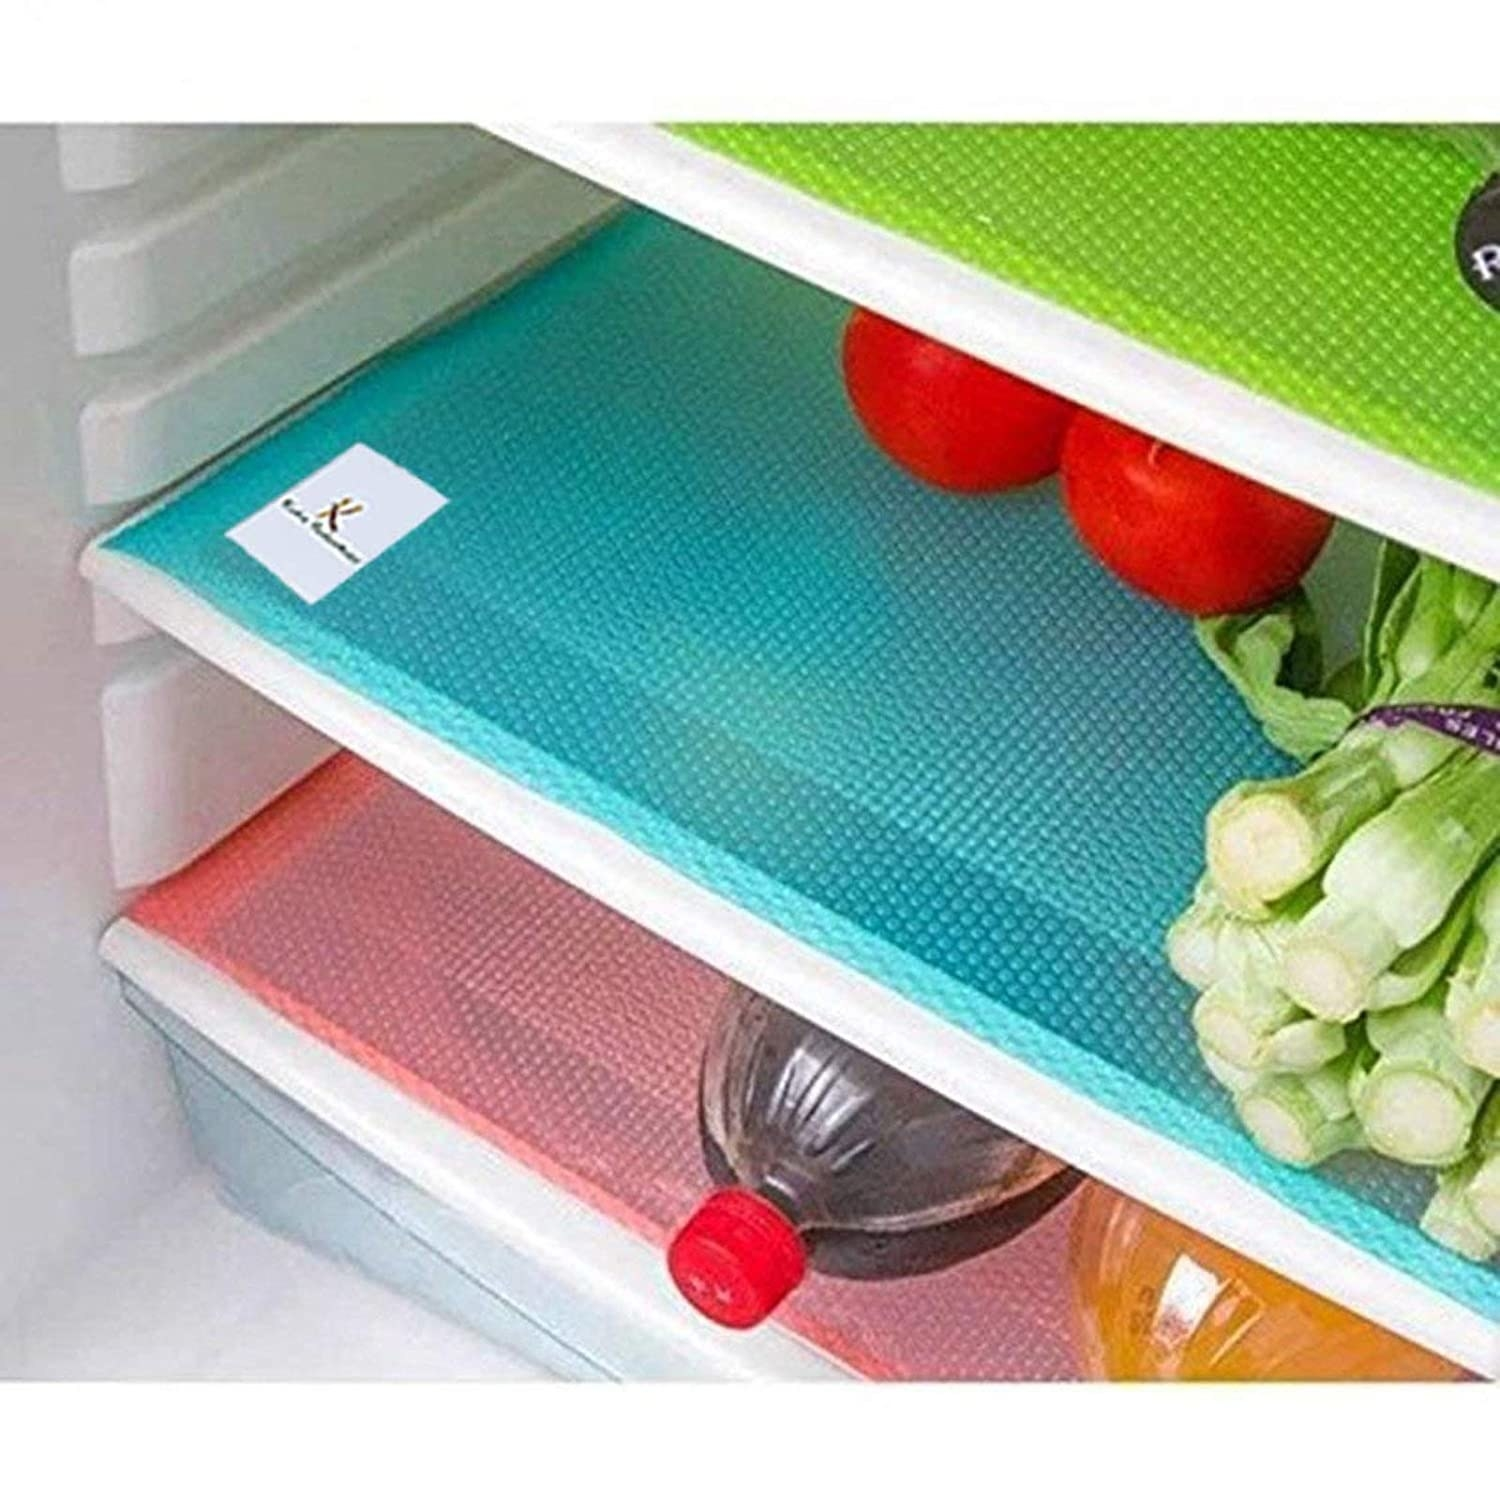 Red, blue and green mats in fridge with vegetables and beverages on top of them